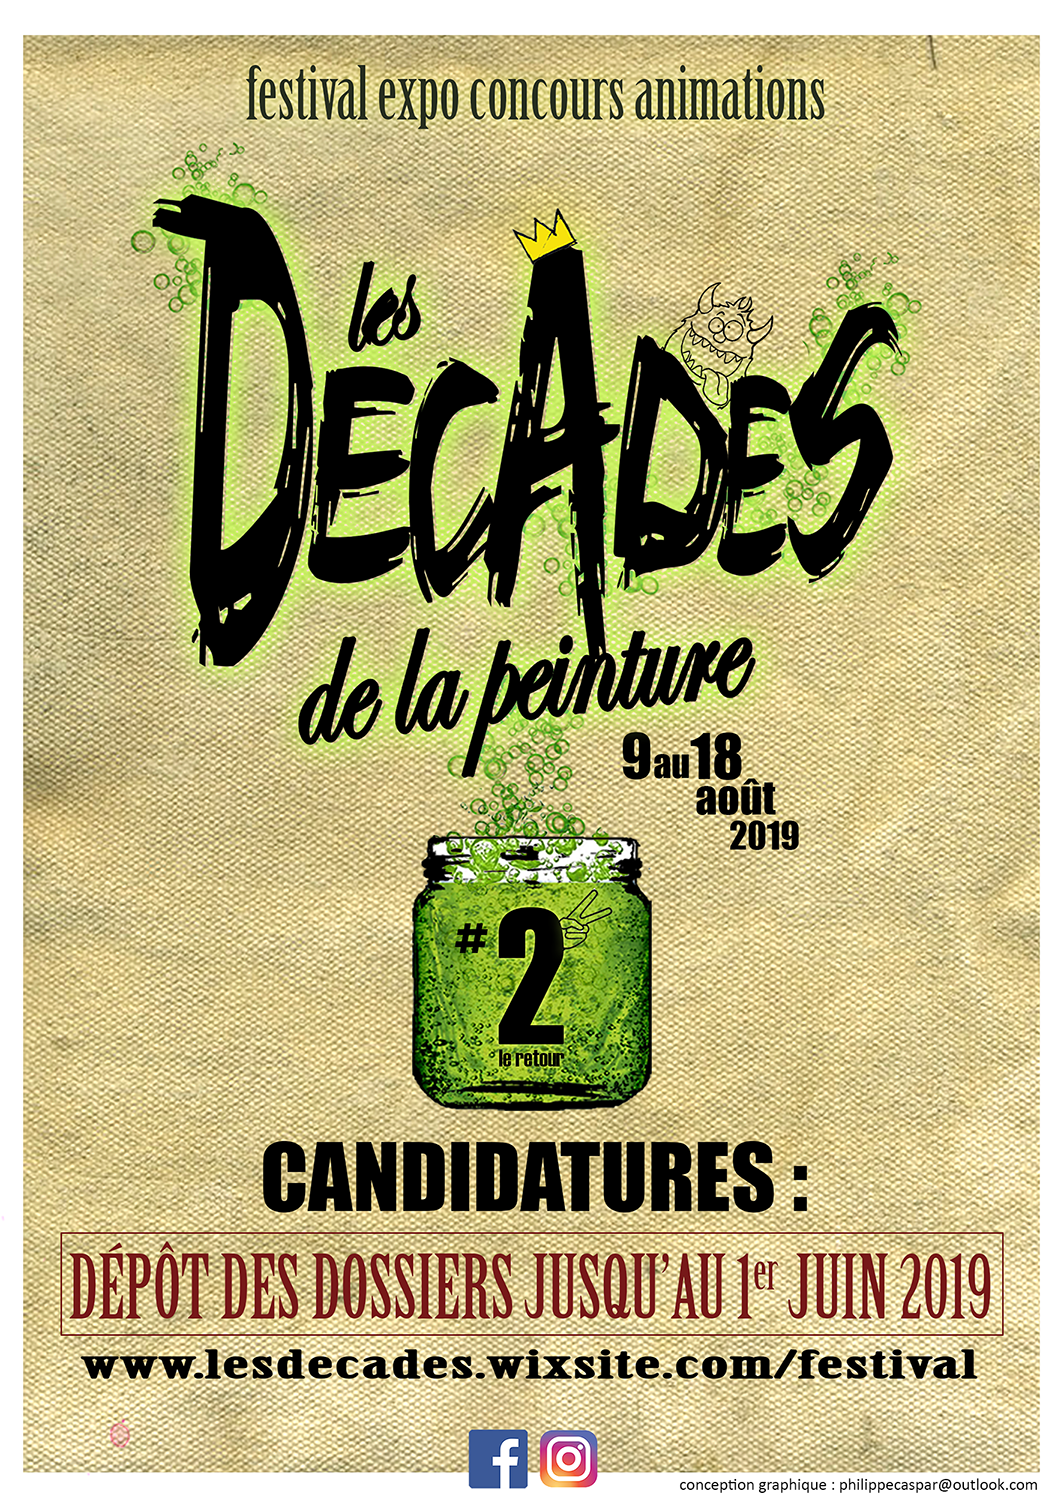 APPEL A CANDIDATURES - DECADES DE LA PEINTURE